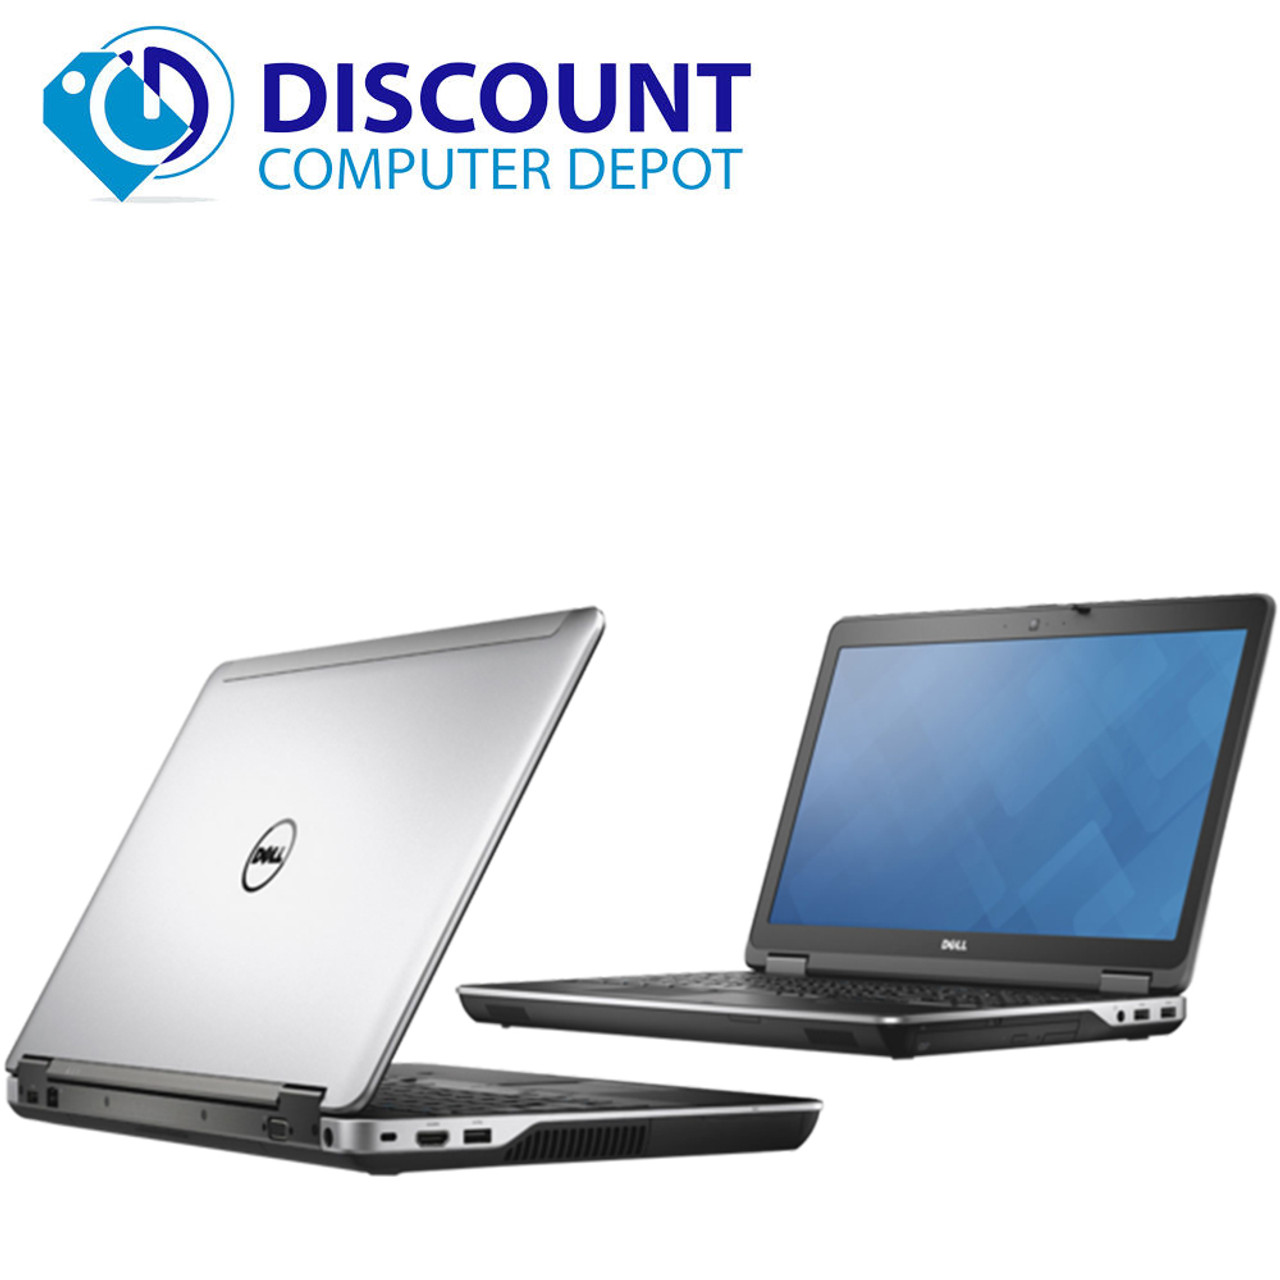 Dell Latitude E6440 Windows 10 Pro 14